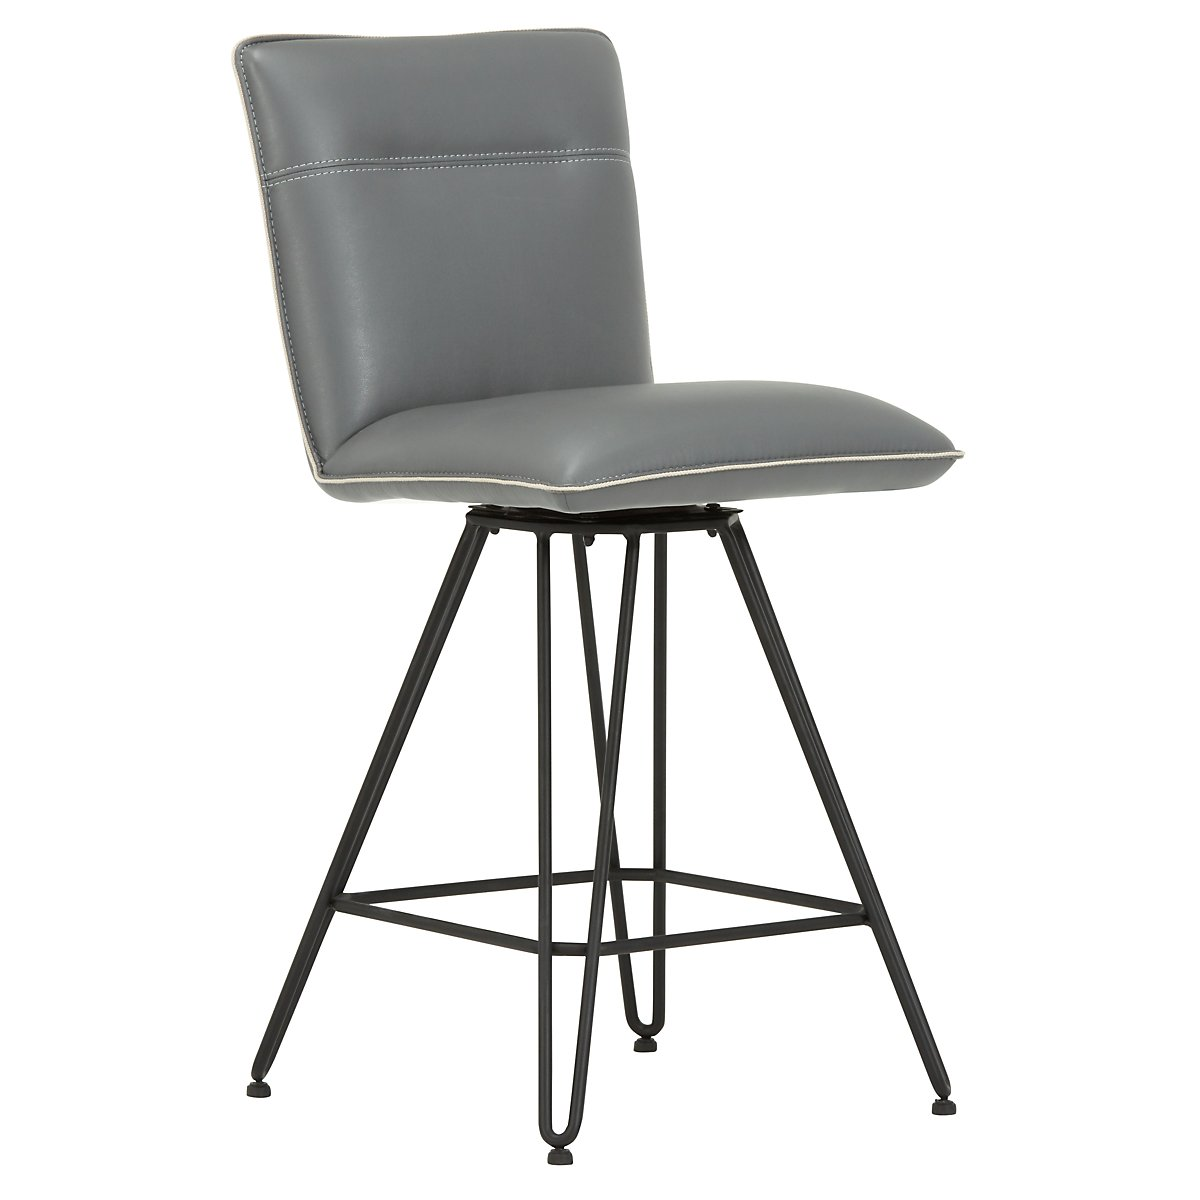 "Demi Dark Gray Upholstered 24"" Swivel Barstool"